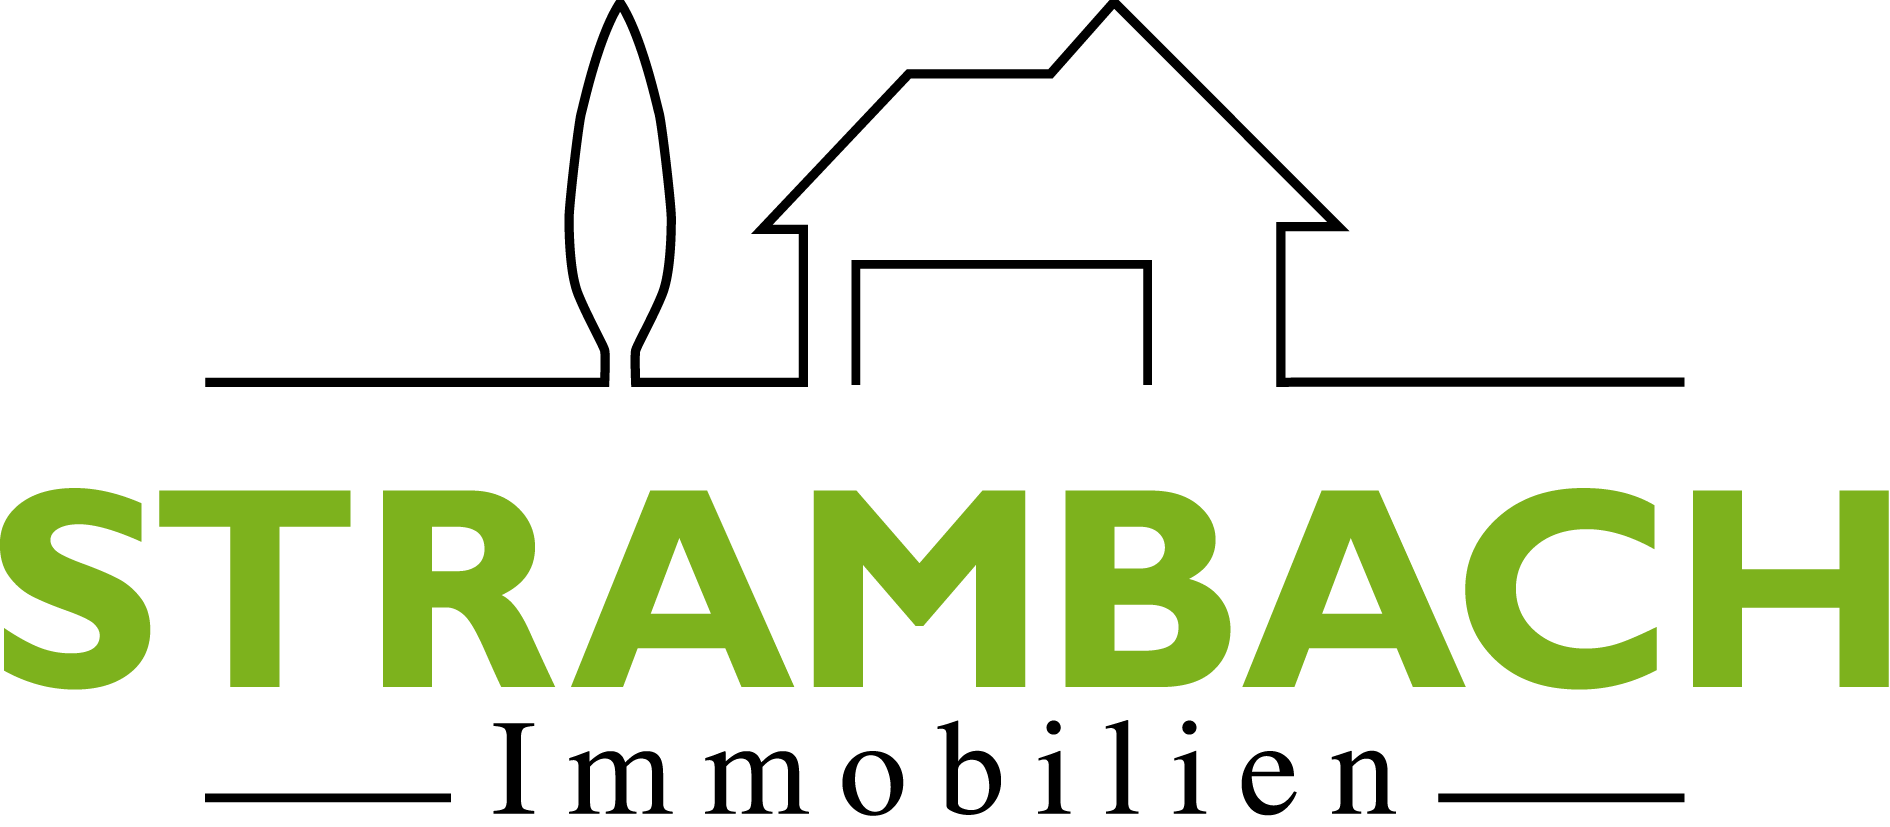 Strambach Immobilien